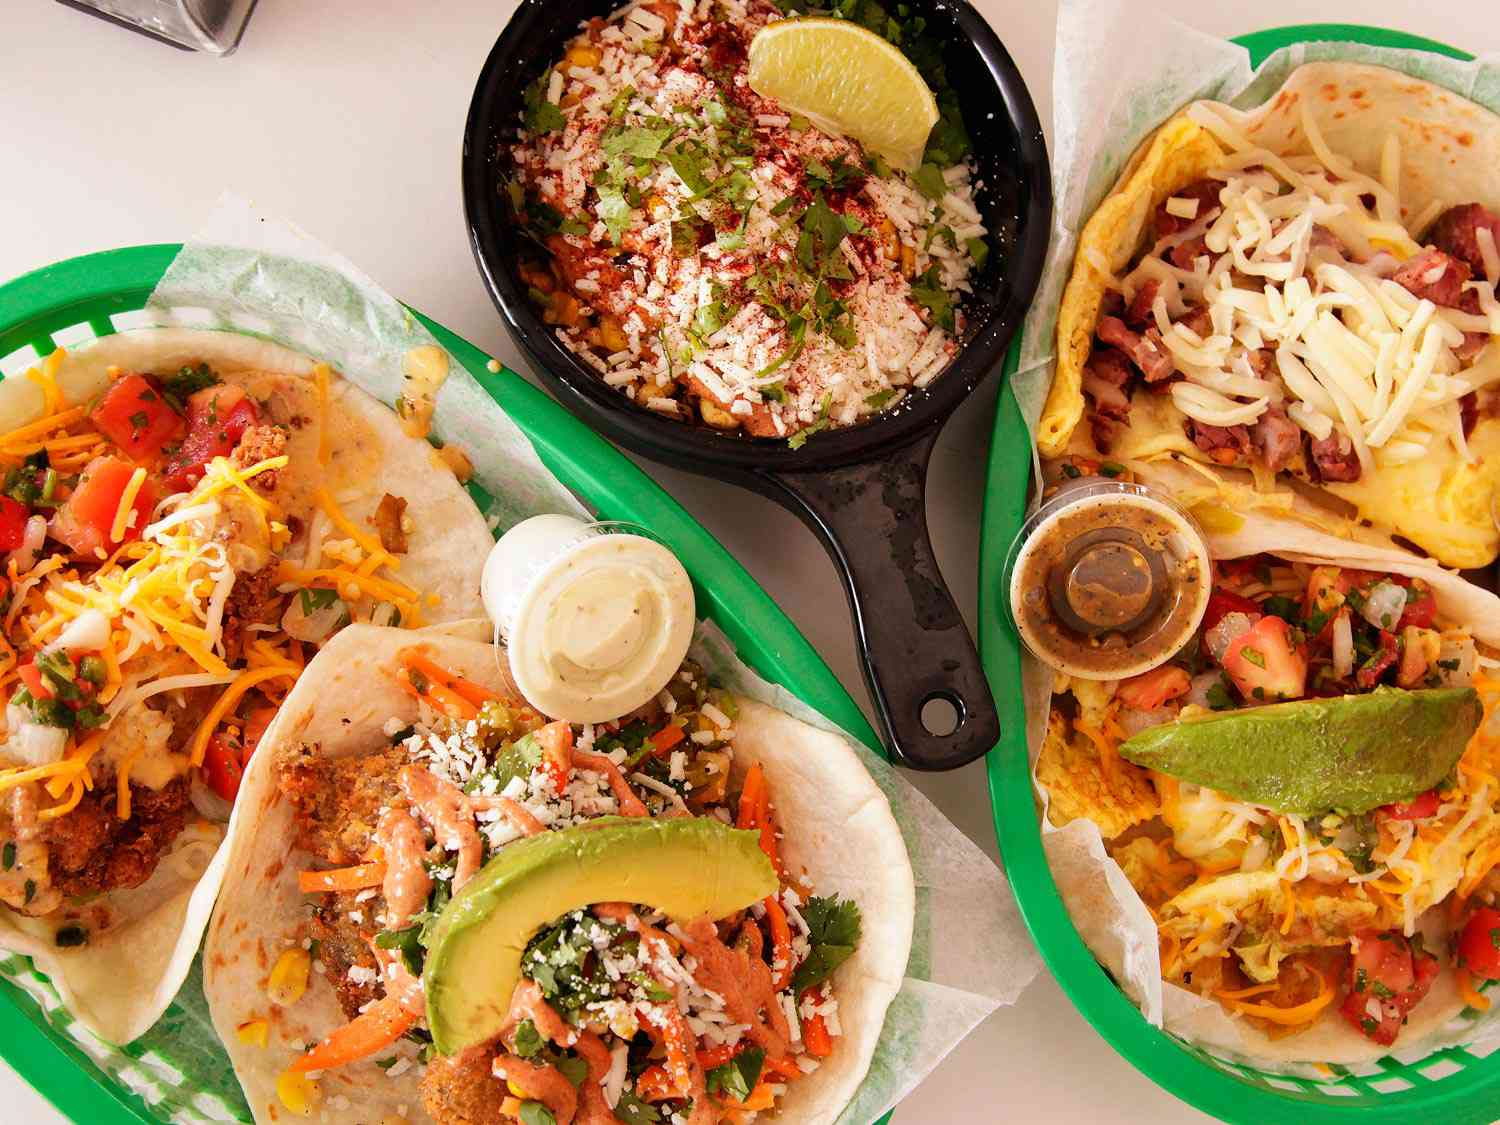 Trays of tacos and a small pan of esquites from Torchy's Tacos